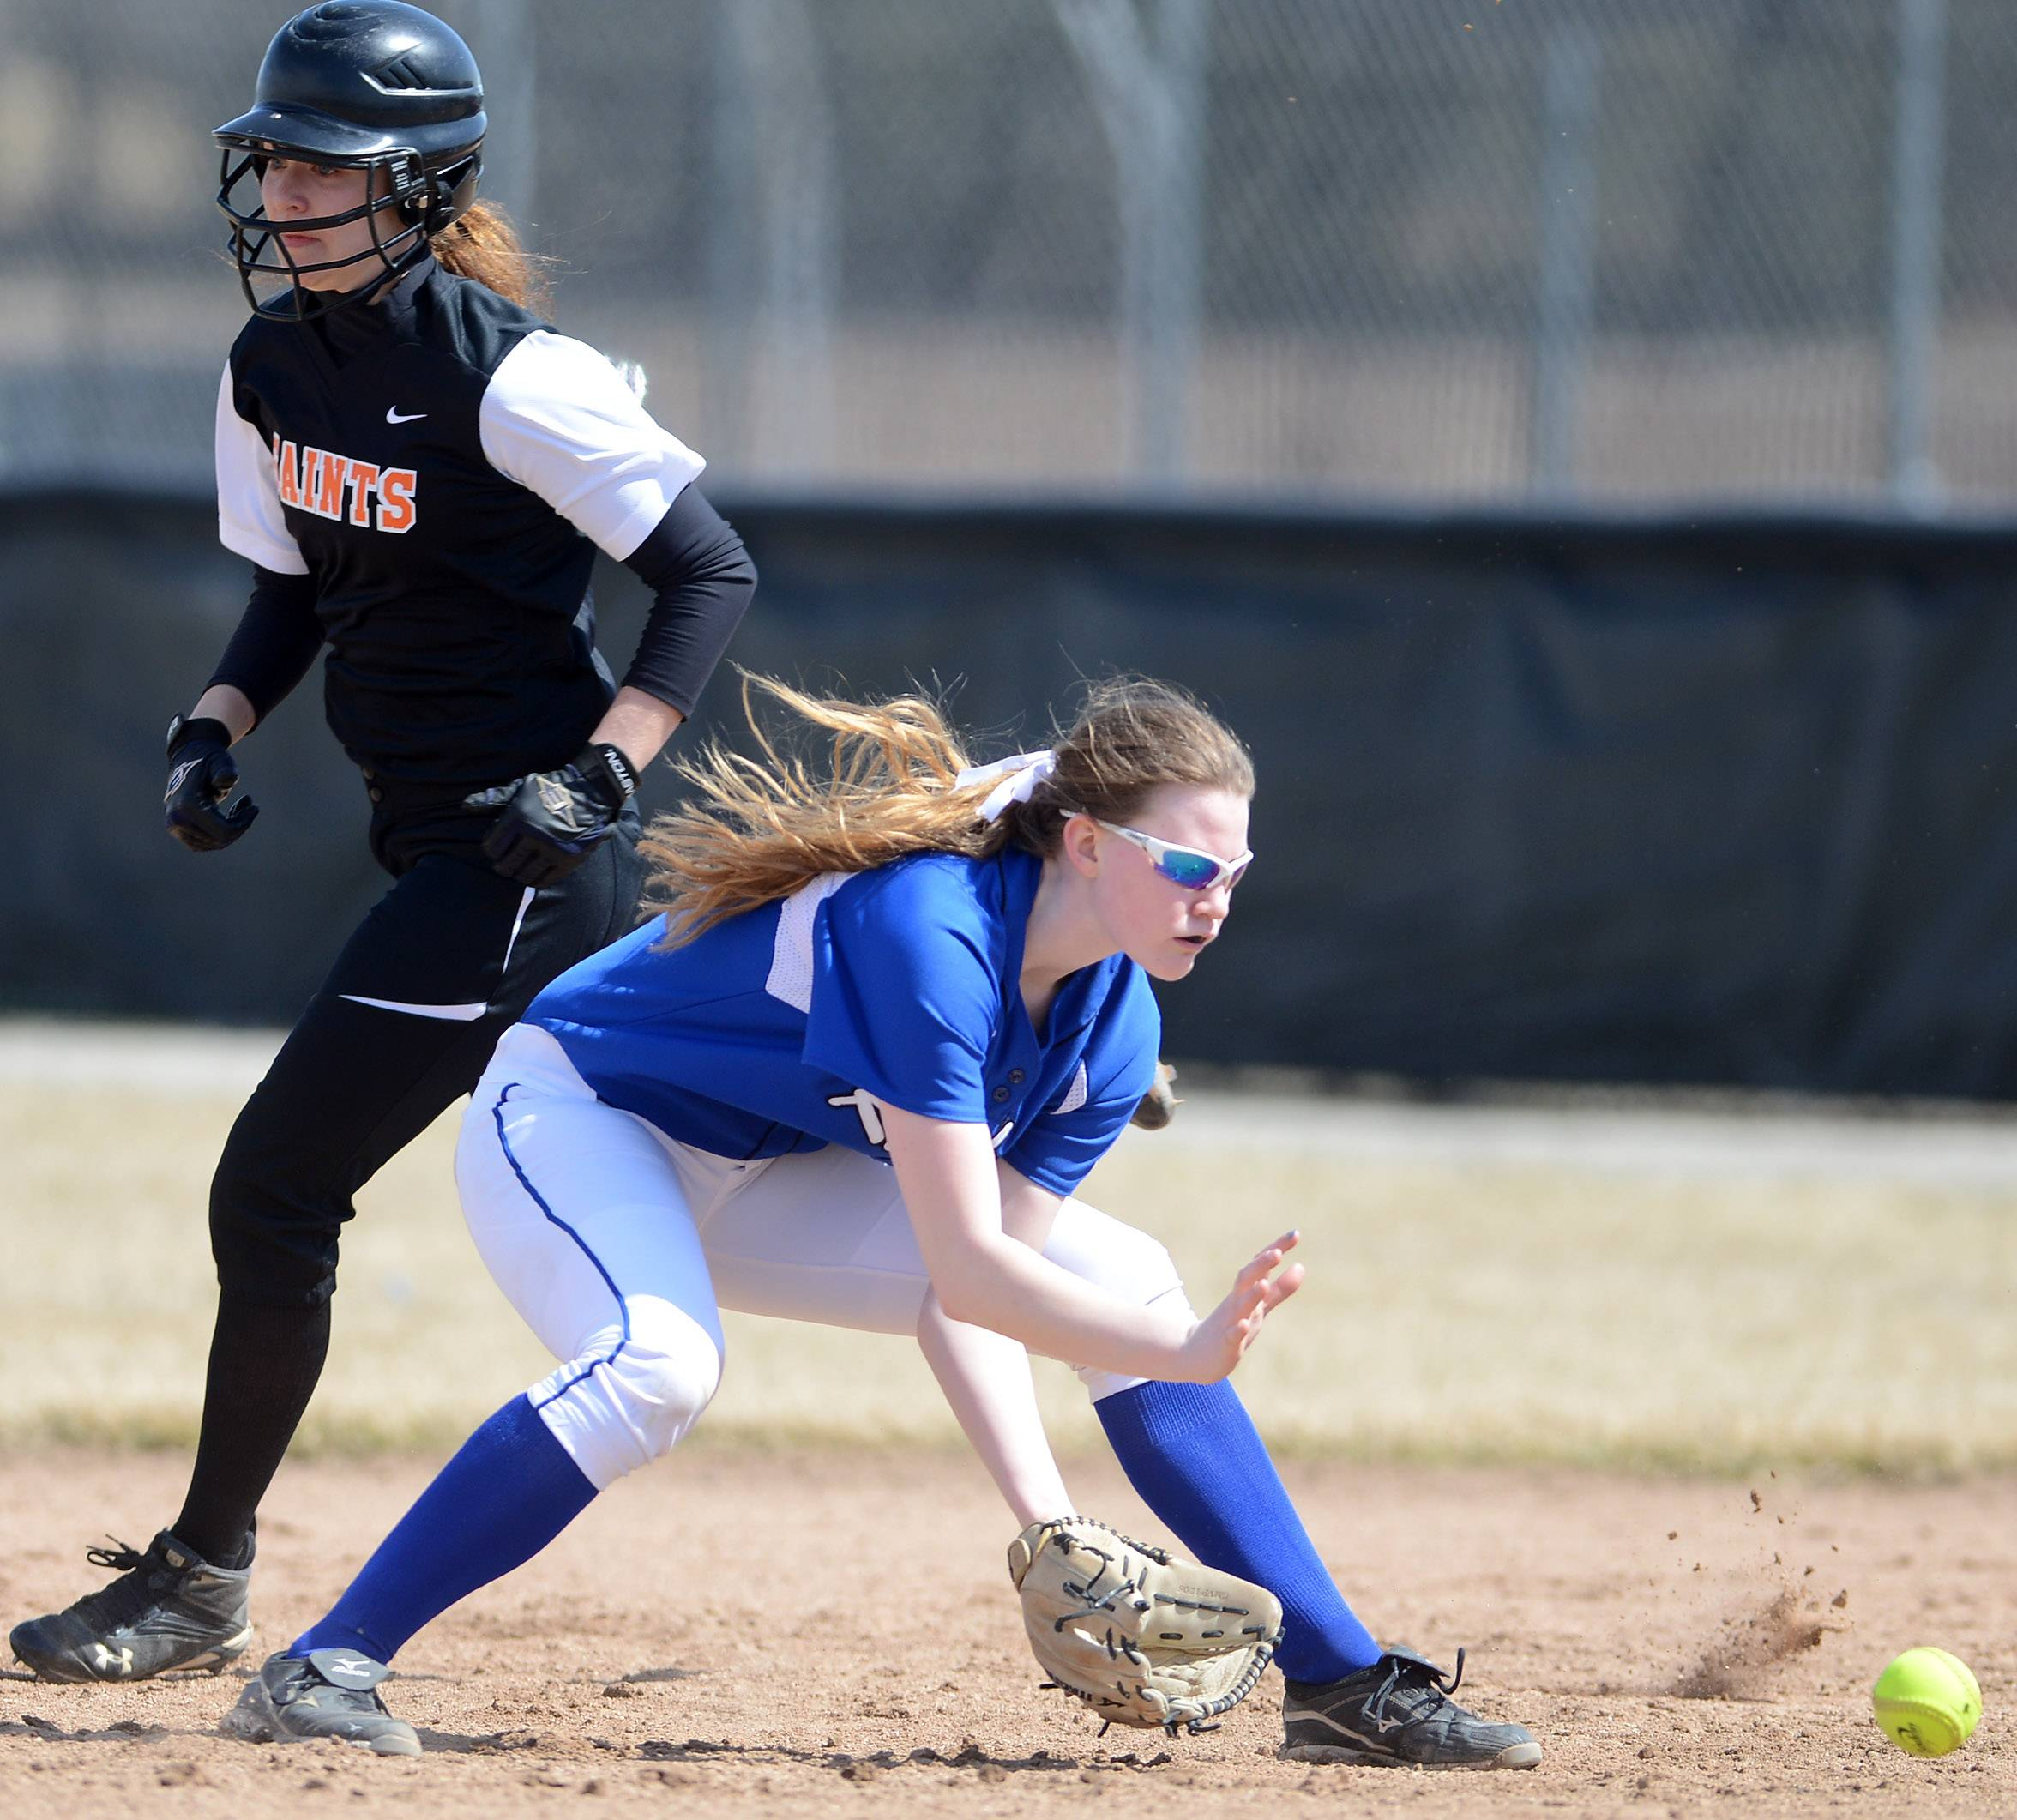 Burlington Central's Rebecca Gerke fields a grounder at second against St. Charles East during Monday's game in St. Charles.